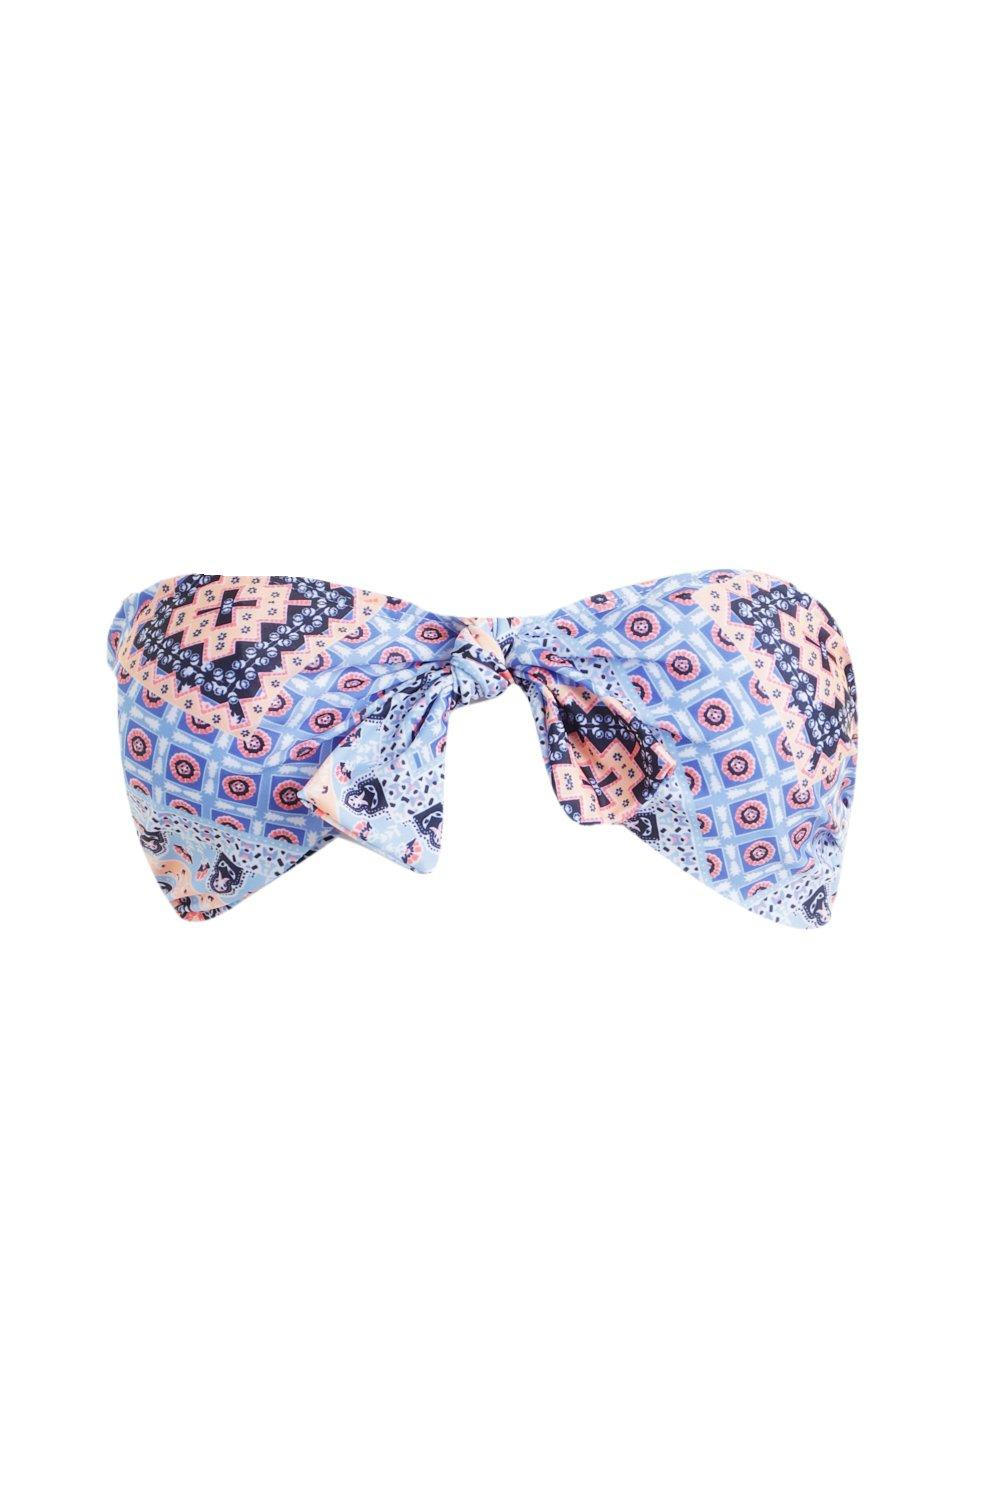 amp; Knotted Tile Mix Match Top Print Bandeau blue dnE4IqT